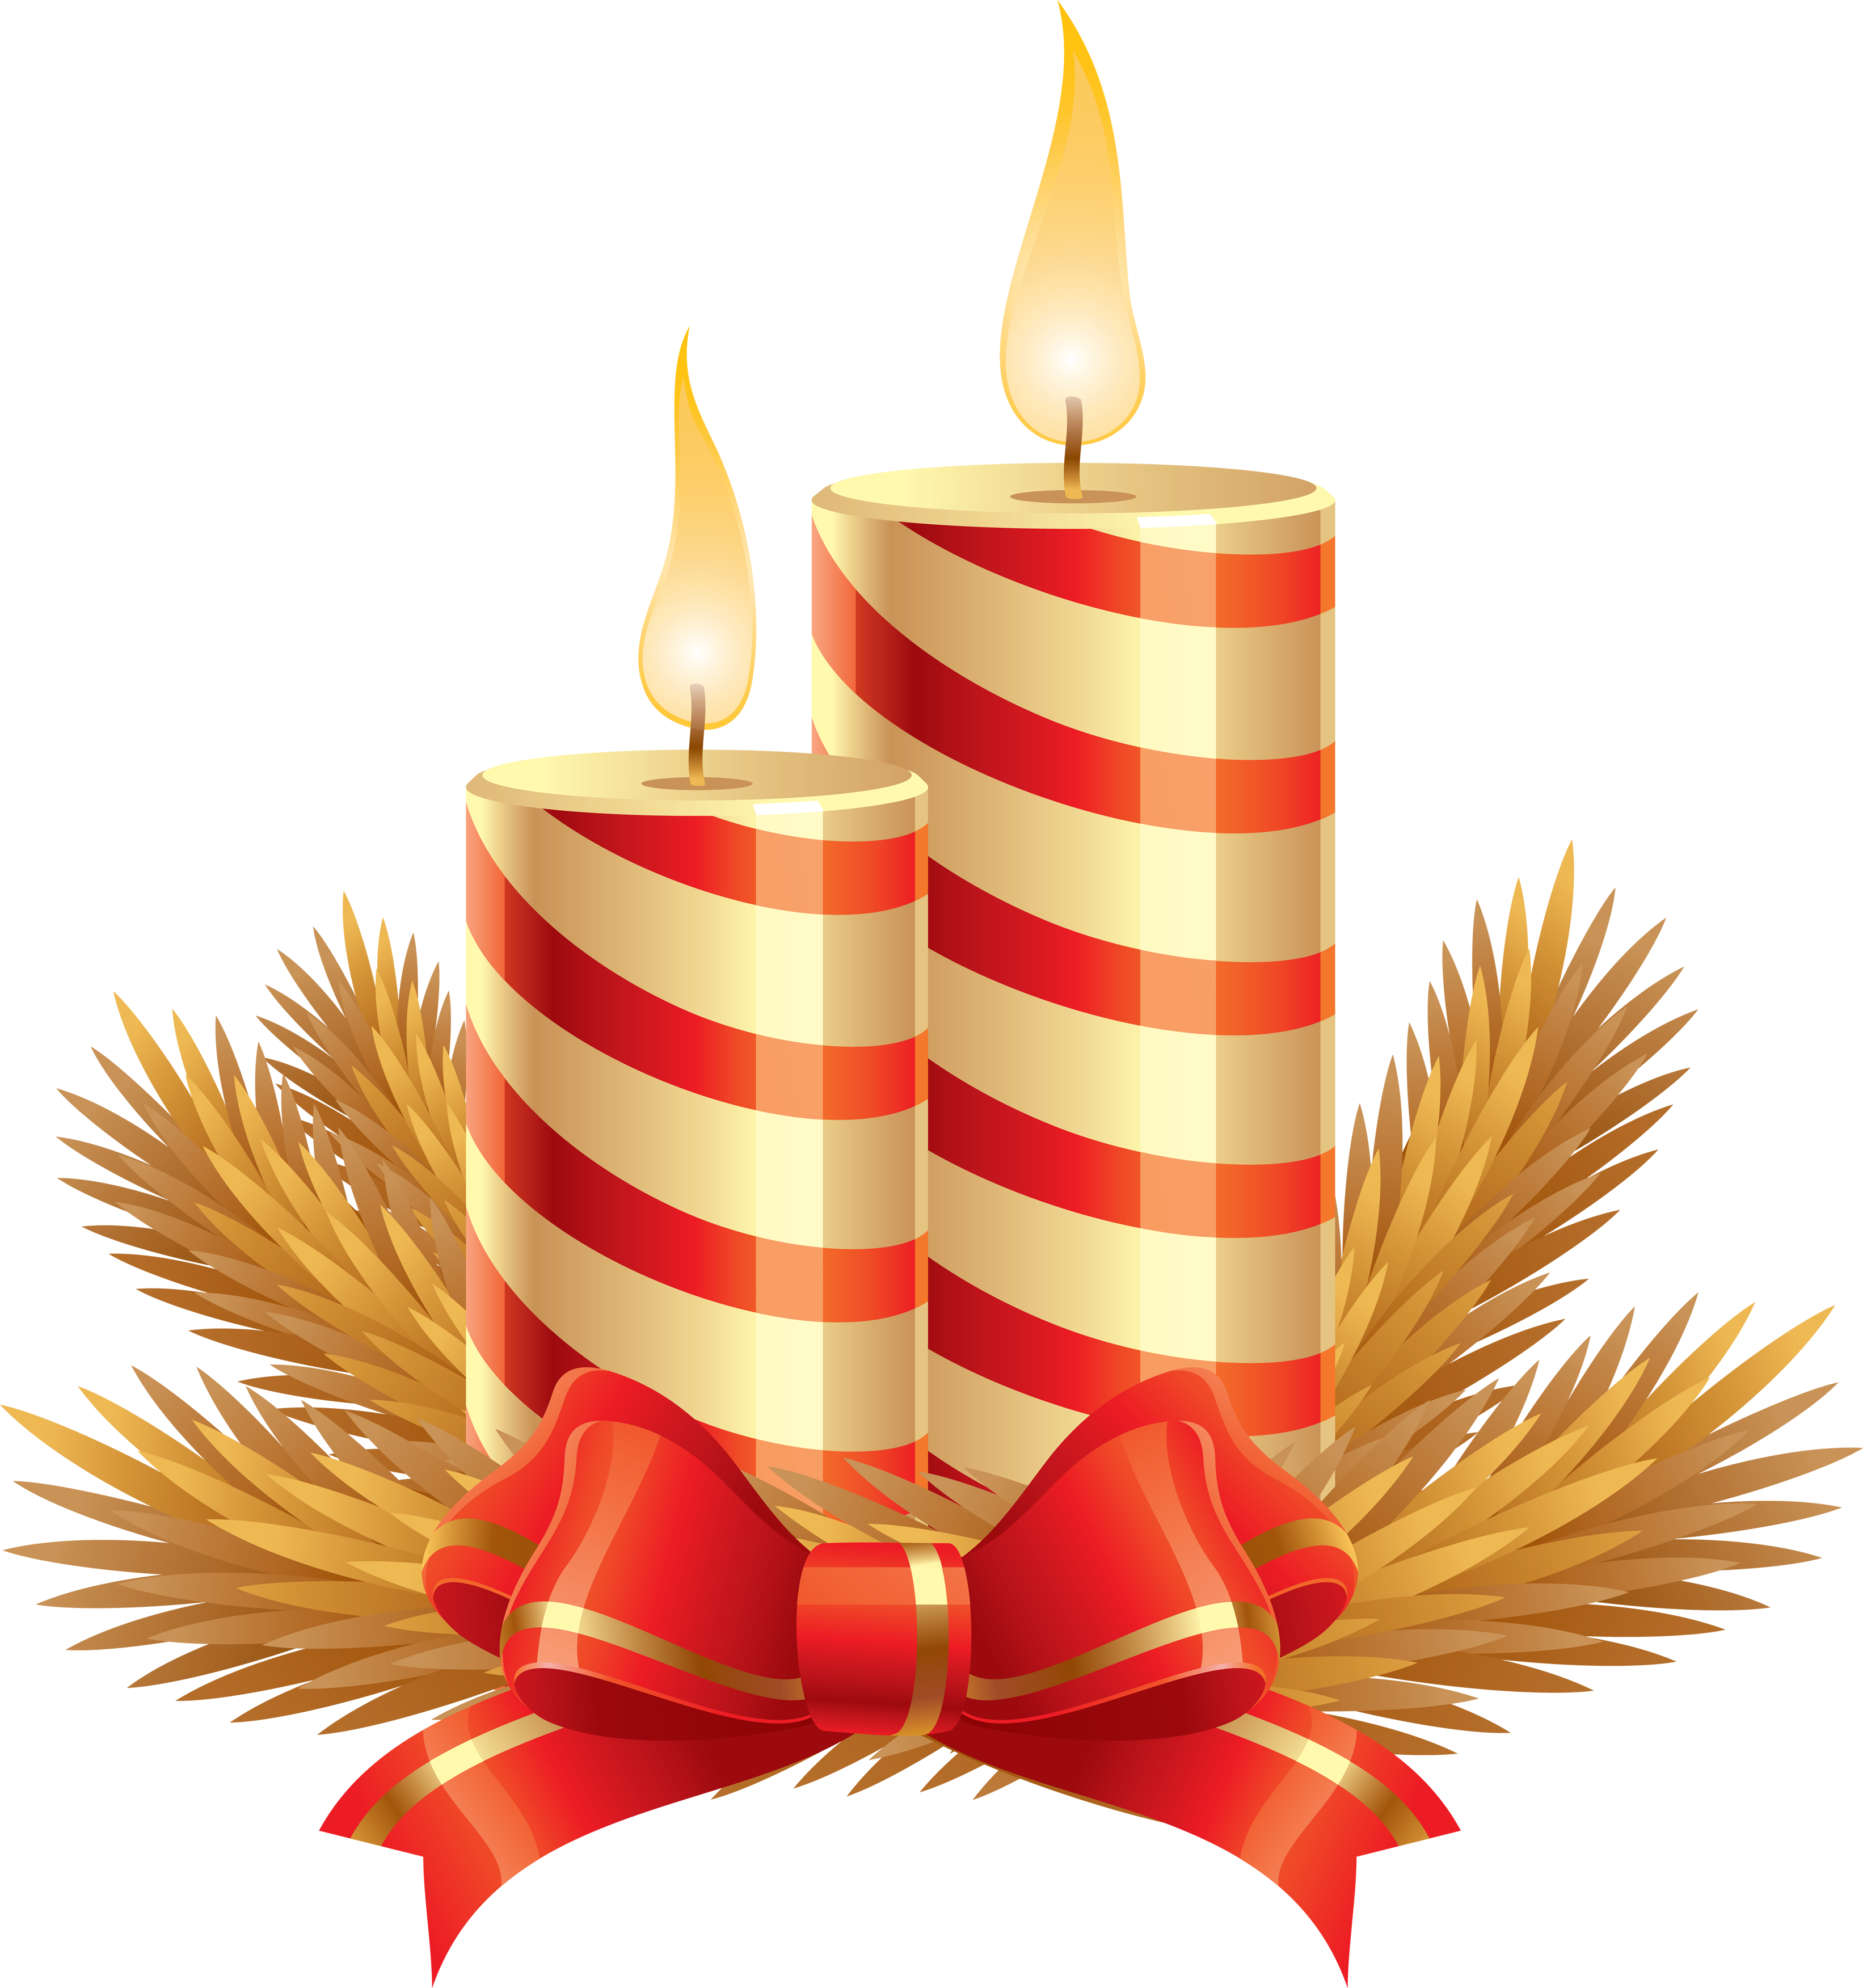 Christmas Graphics Png.Christmas Candle S Png Image Purepng Free Transparent